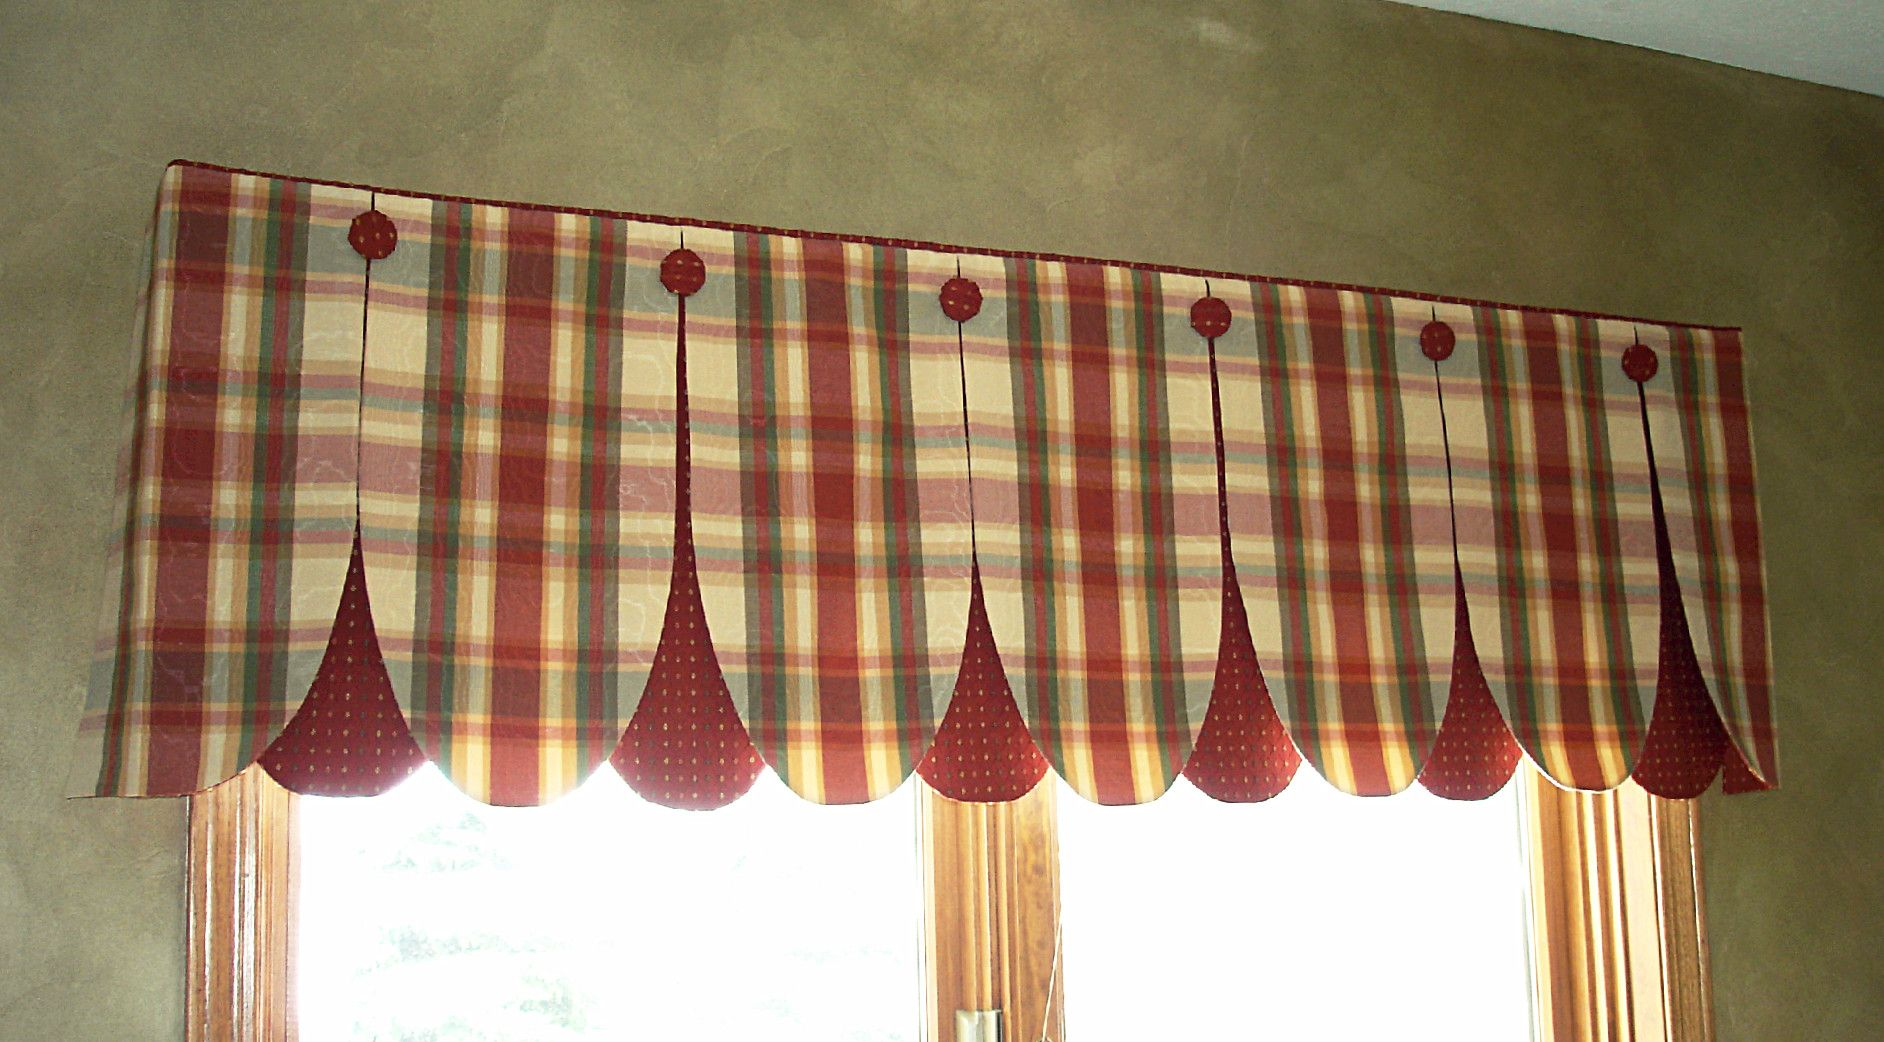 valance designs for windows new cool and funny handmade curved window valance ideas with red square patterns as inspiring windows treatments designs pin by linda feeley on window treatments pinterest